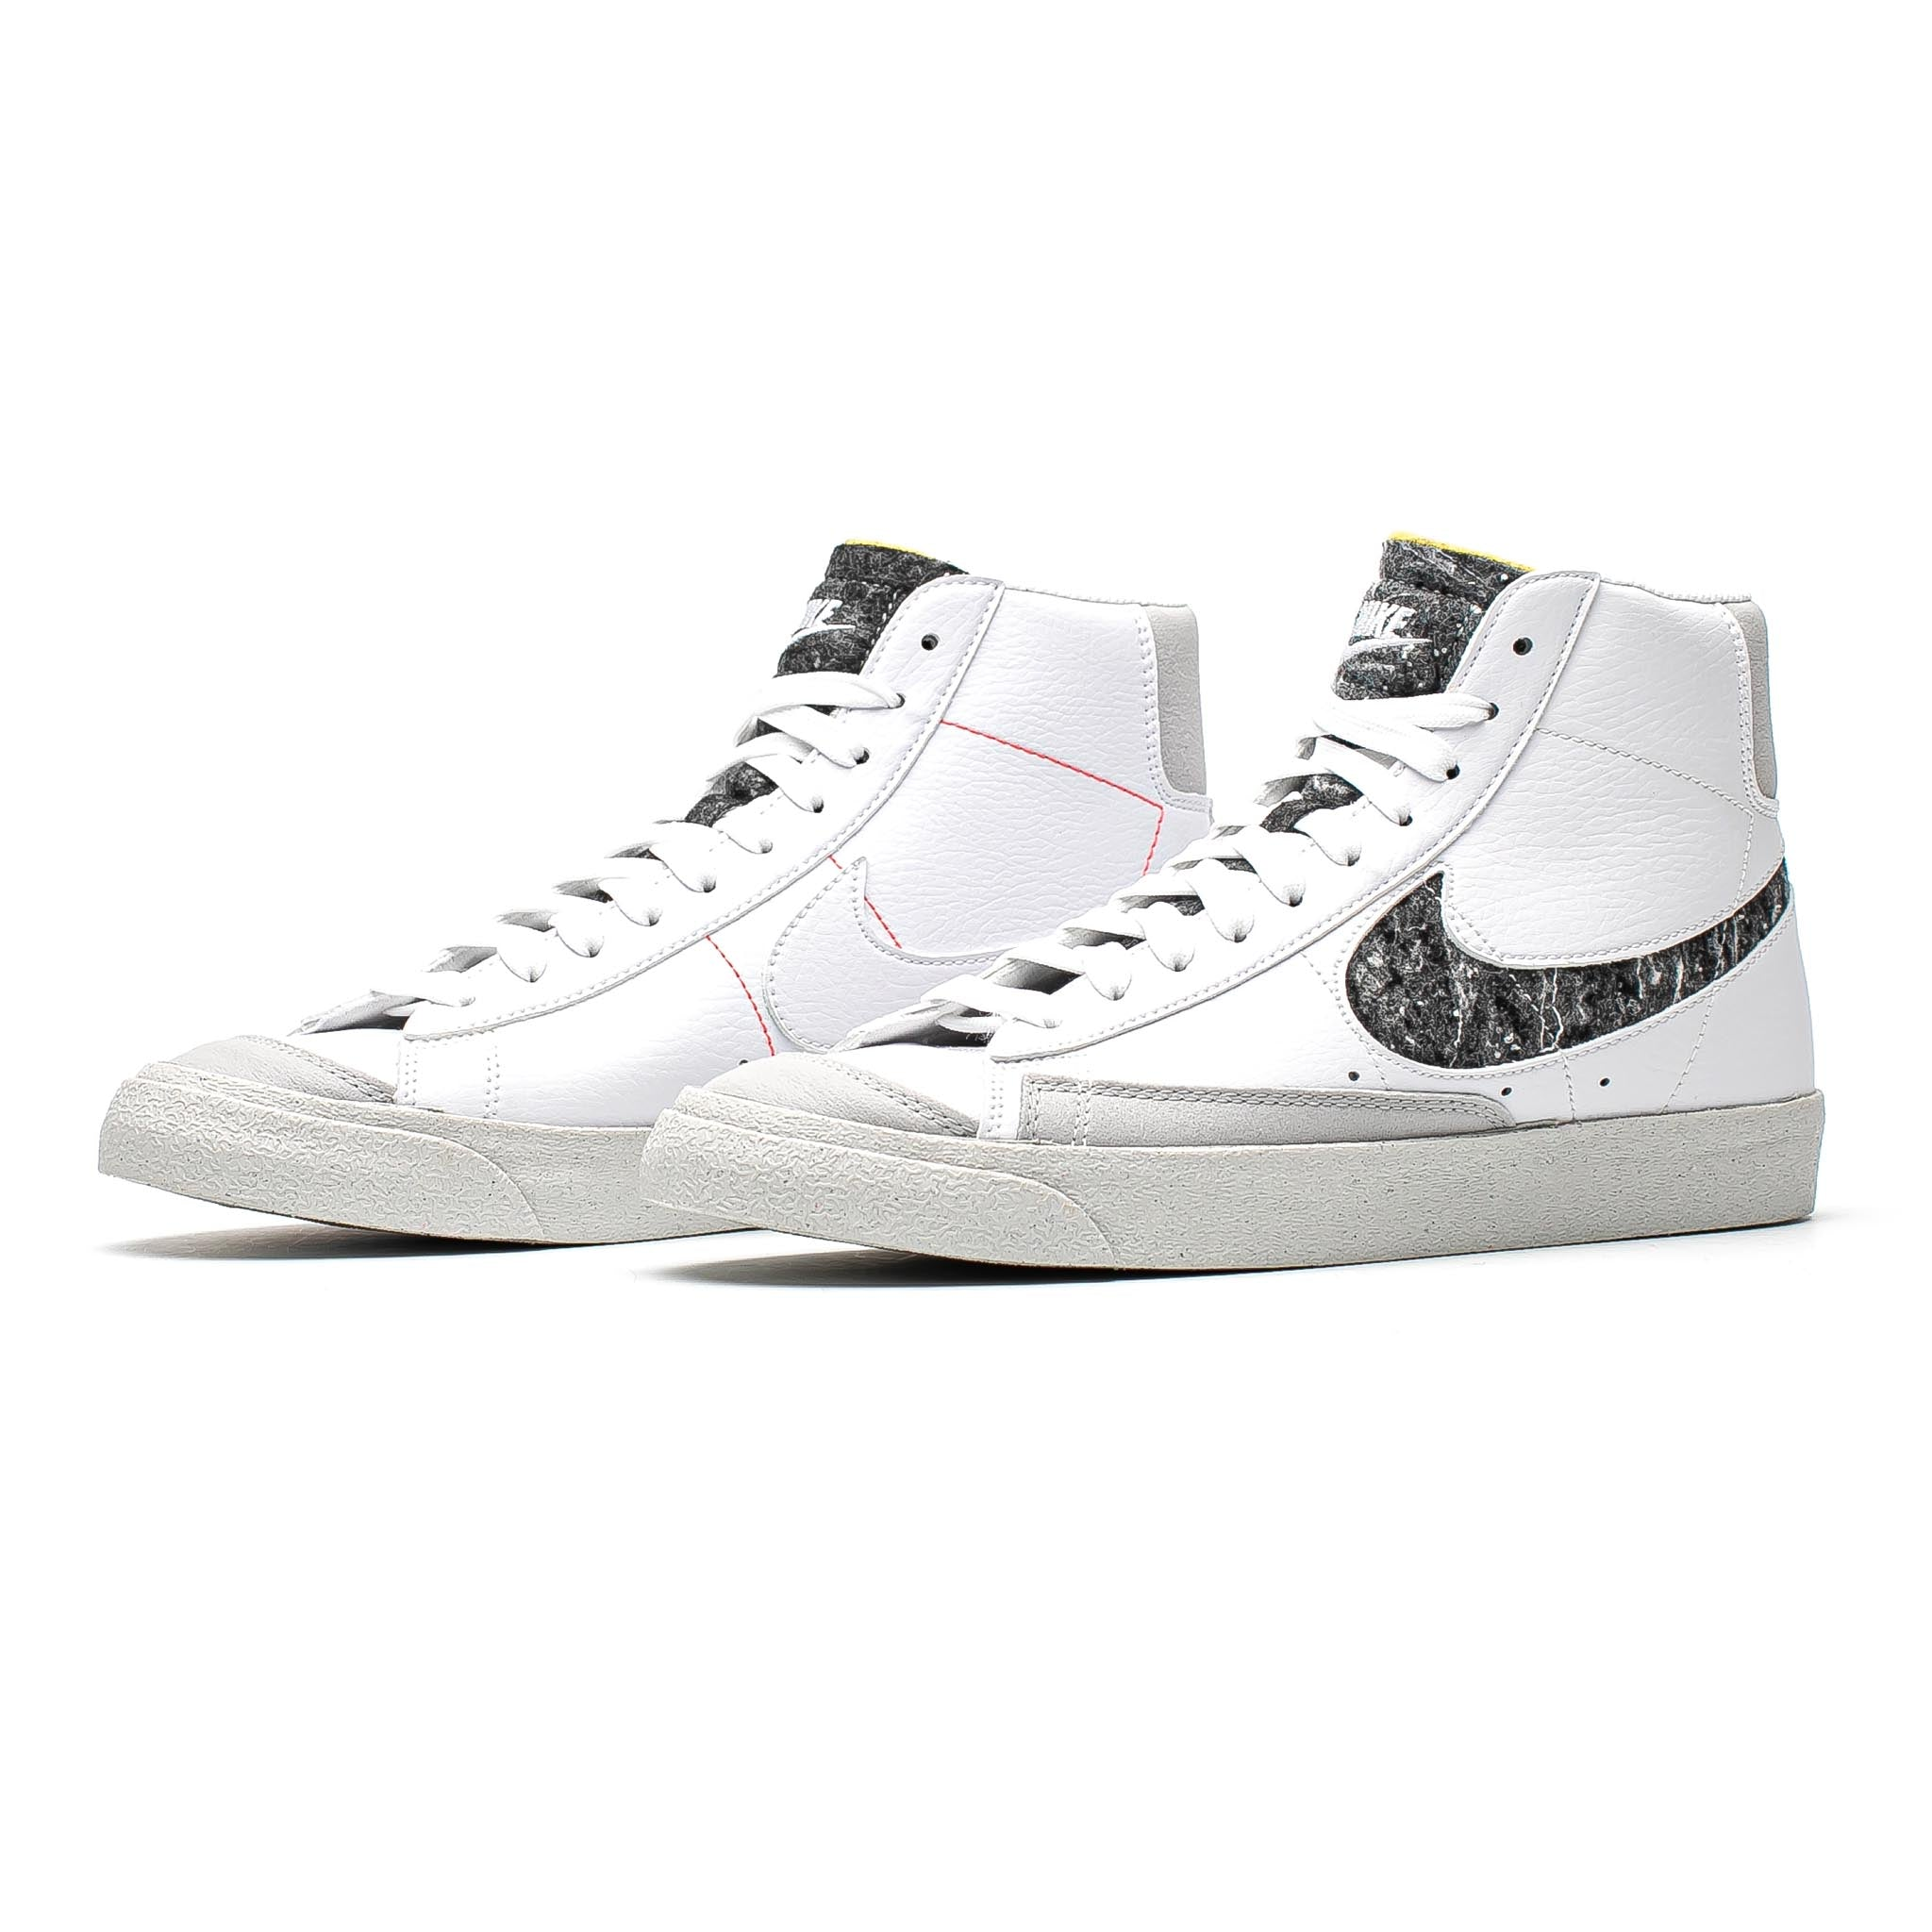 Nike Blazer Mid '77 Vintage 'Recycled Pack' White